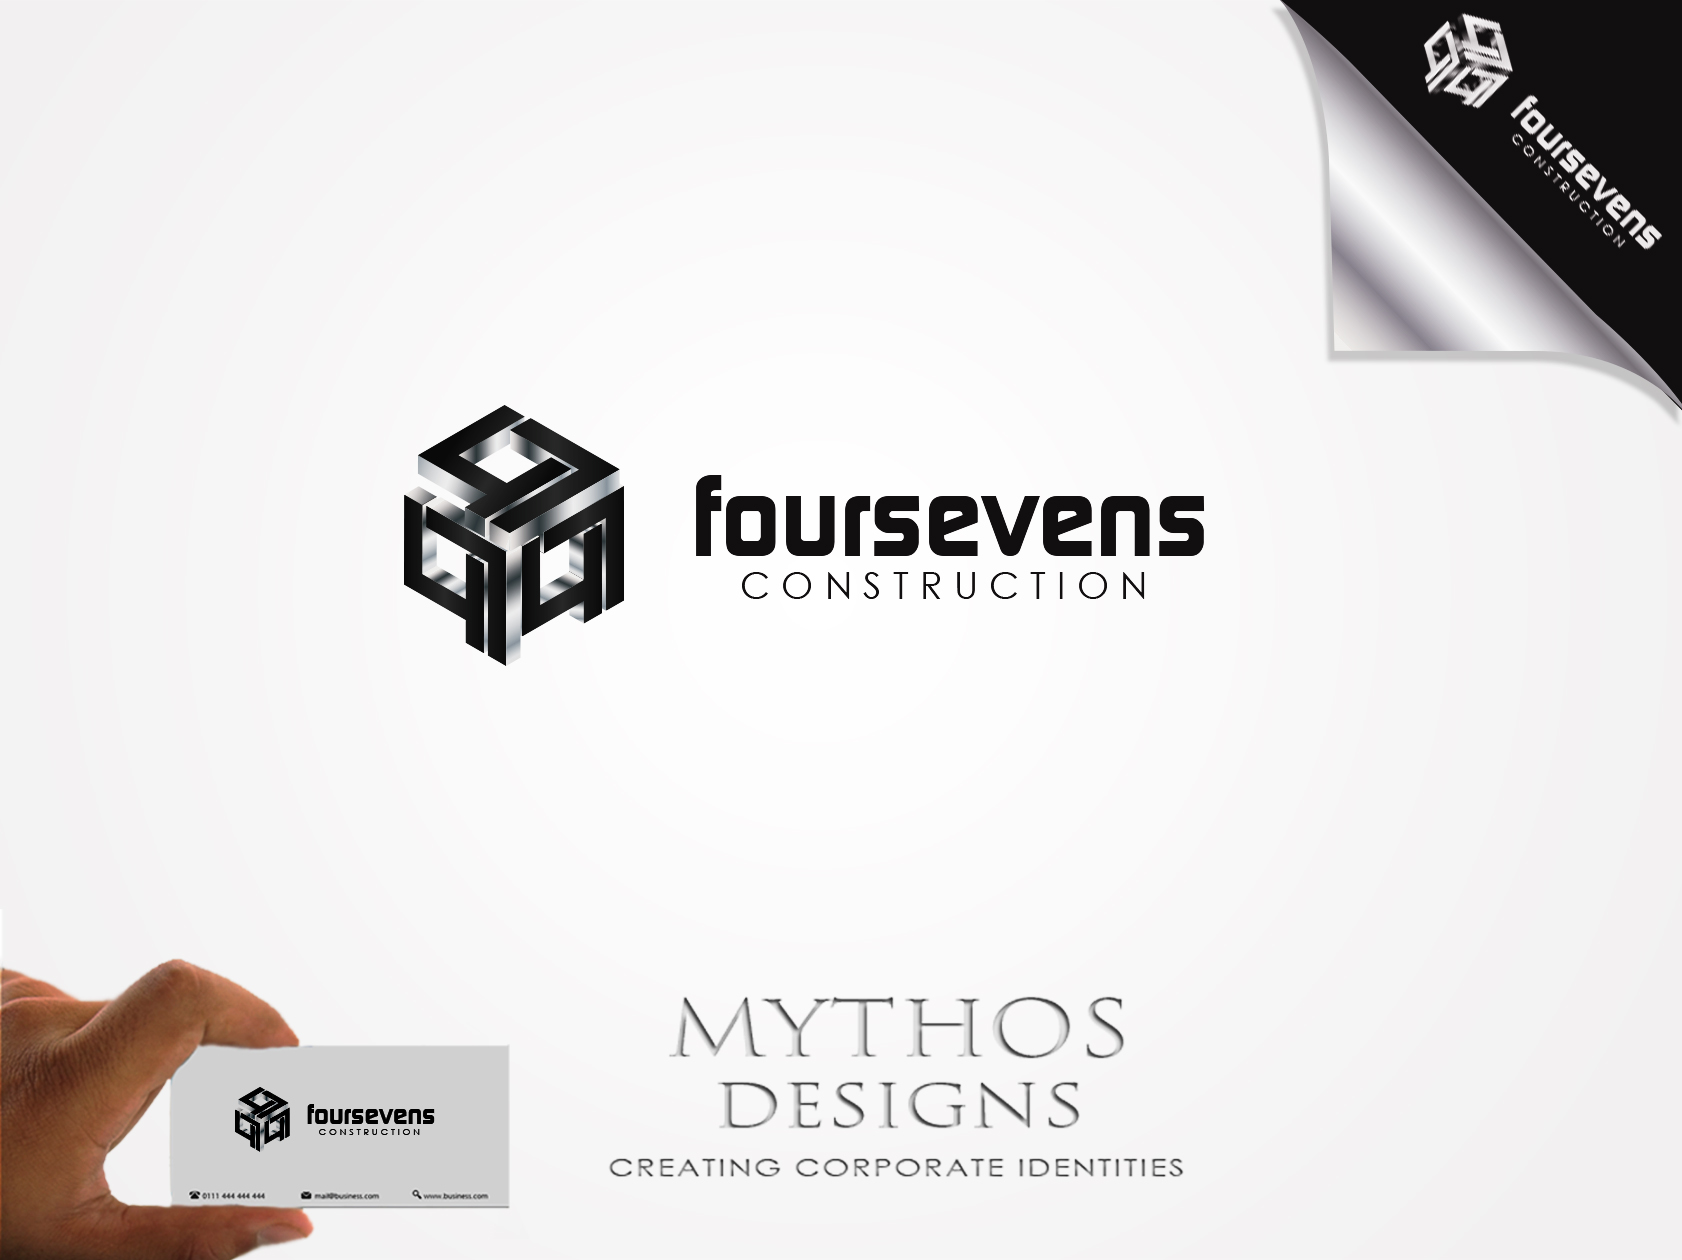 Logo Design by Mythos Designs - Entry No. 43 in the Logo Design Contest New Logo Design for foursevens.